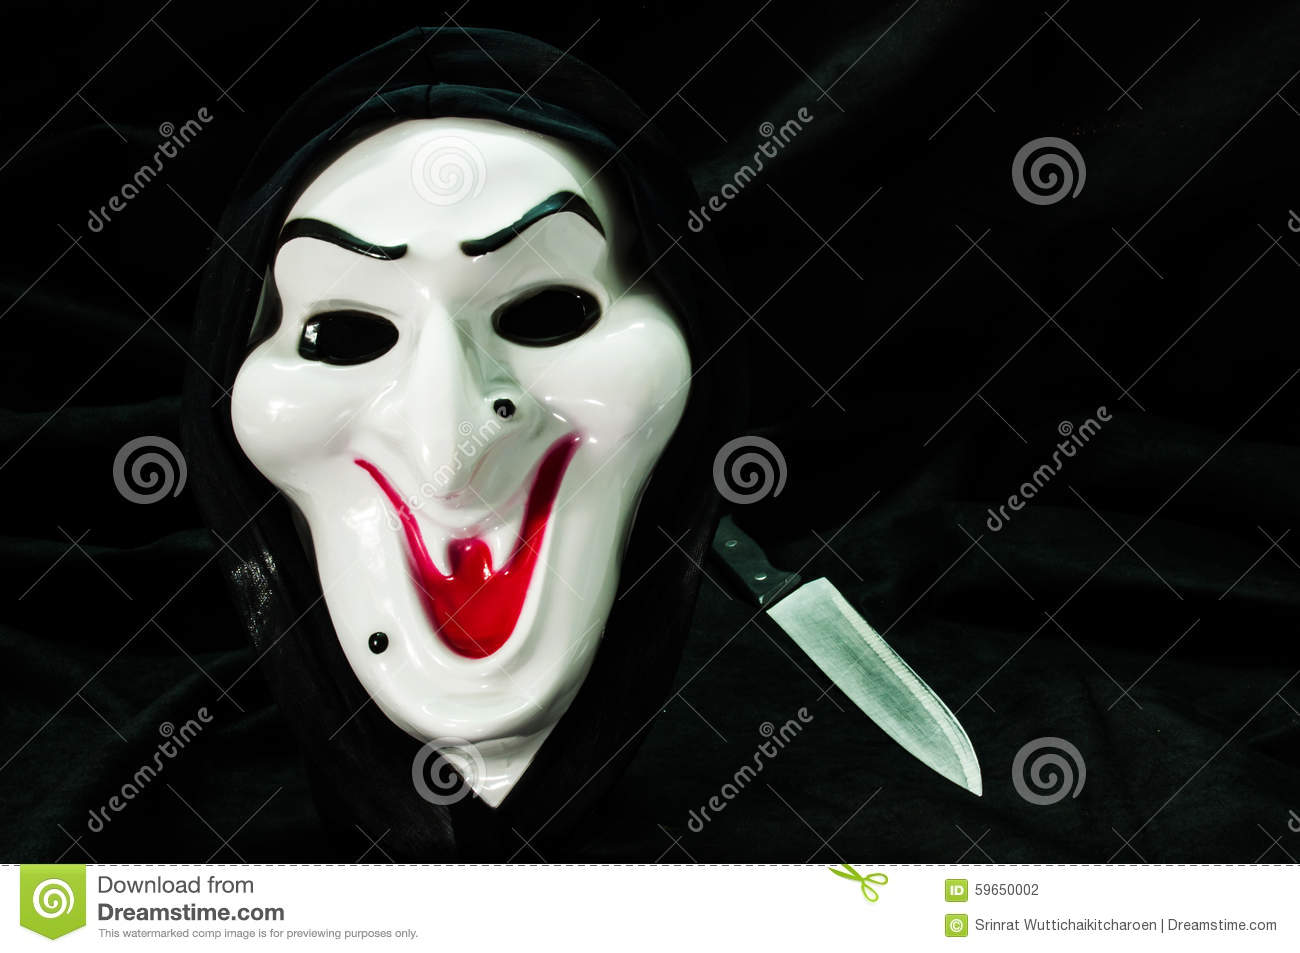 Halloween Ghost Face Mask With Knife Stock Photo - Image: 59650002